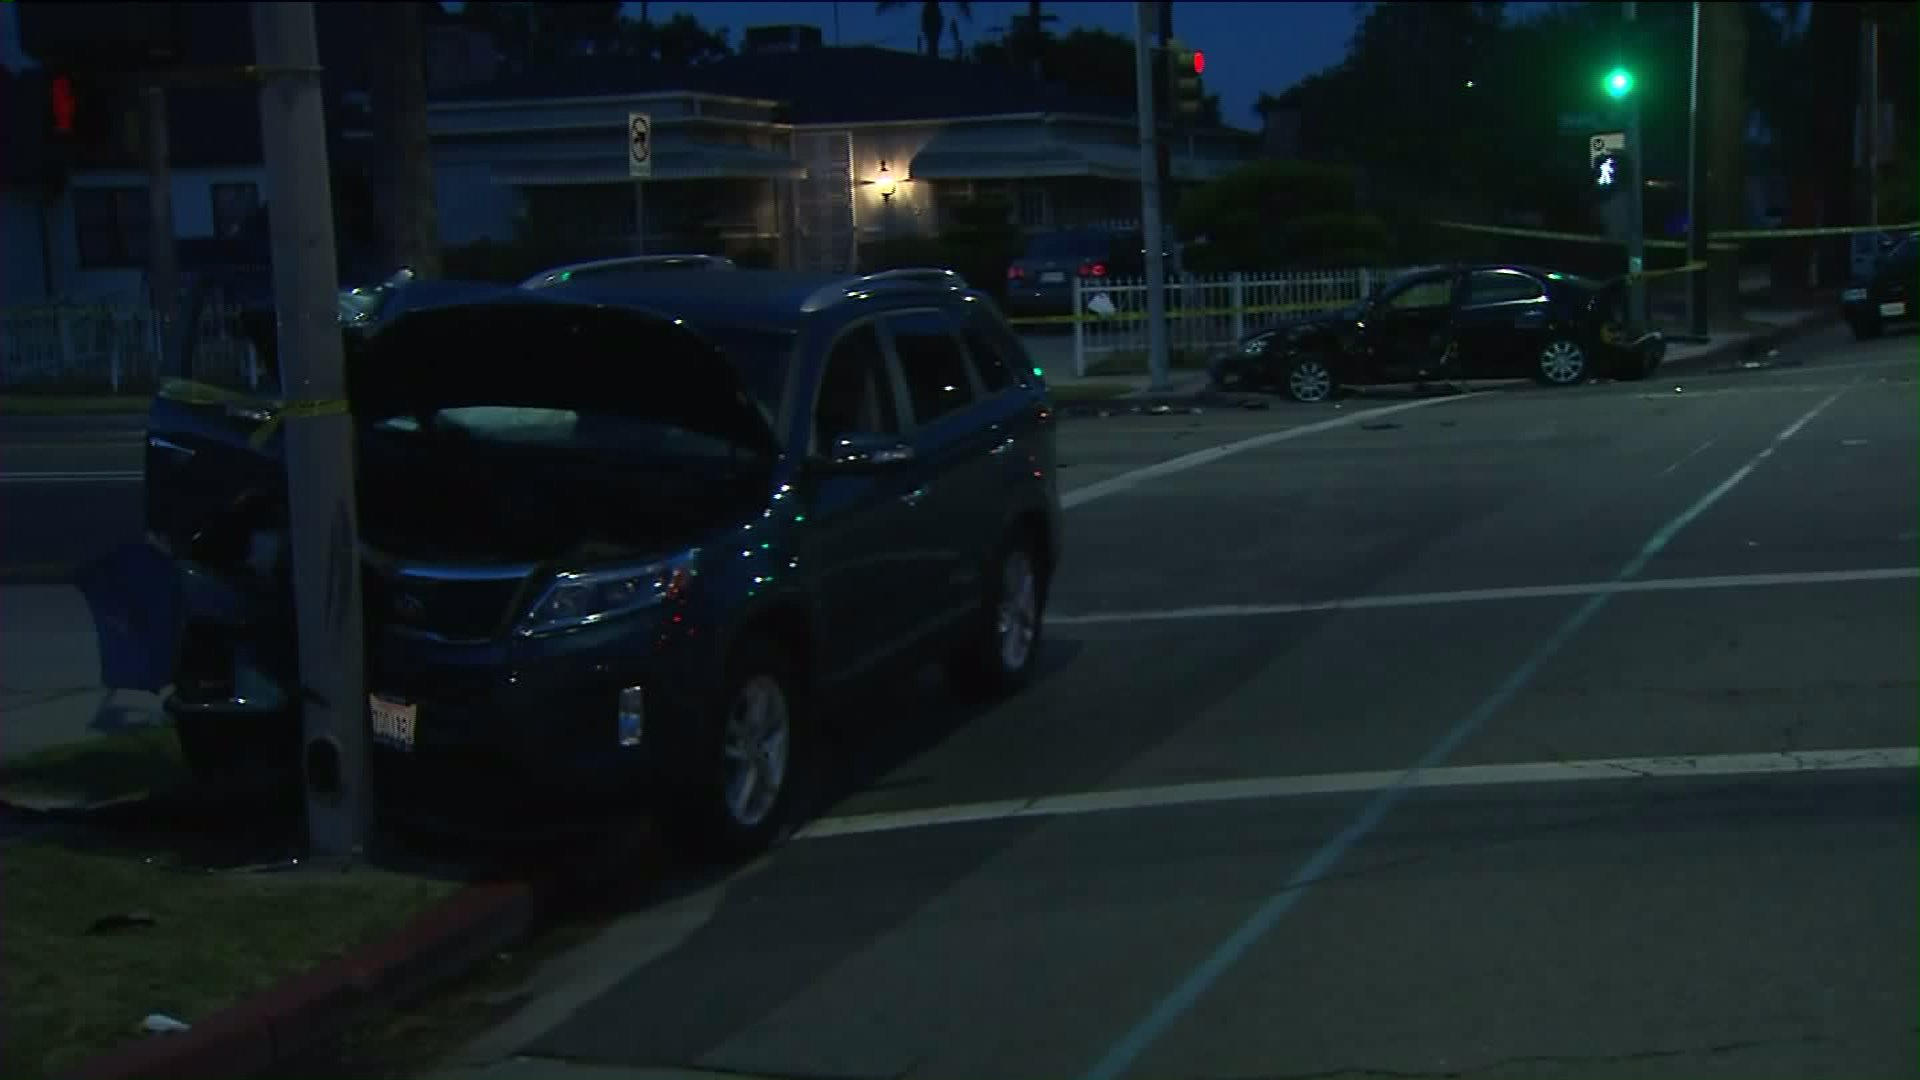 Multiple vehicles were involved in collisions after a driver was fatally shot in Leimert Park on Monday, July 20, 2015. (Credit: KTLA)